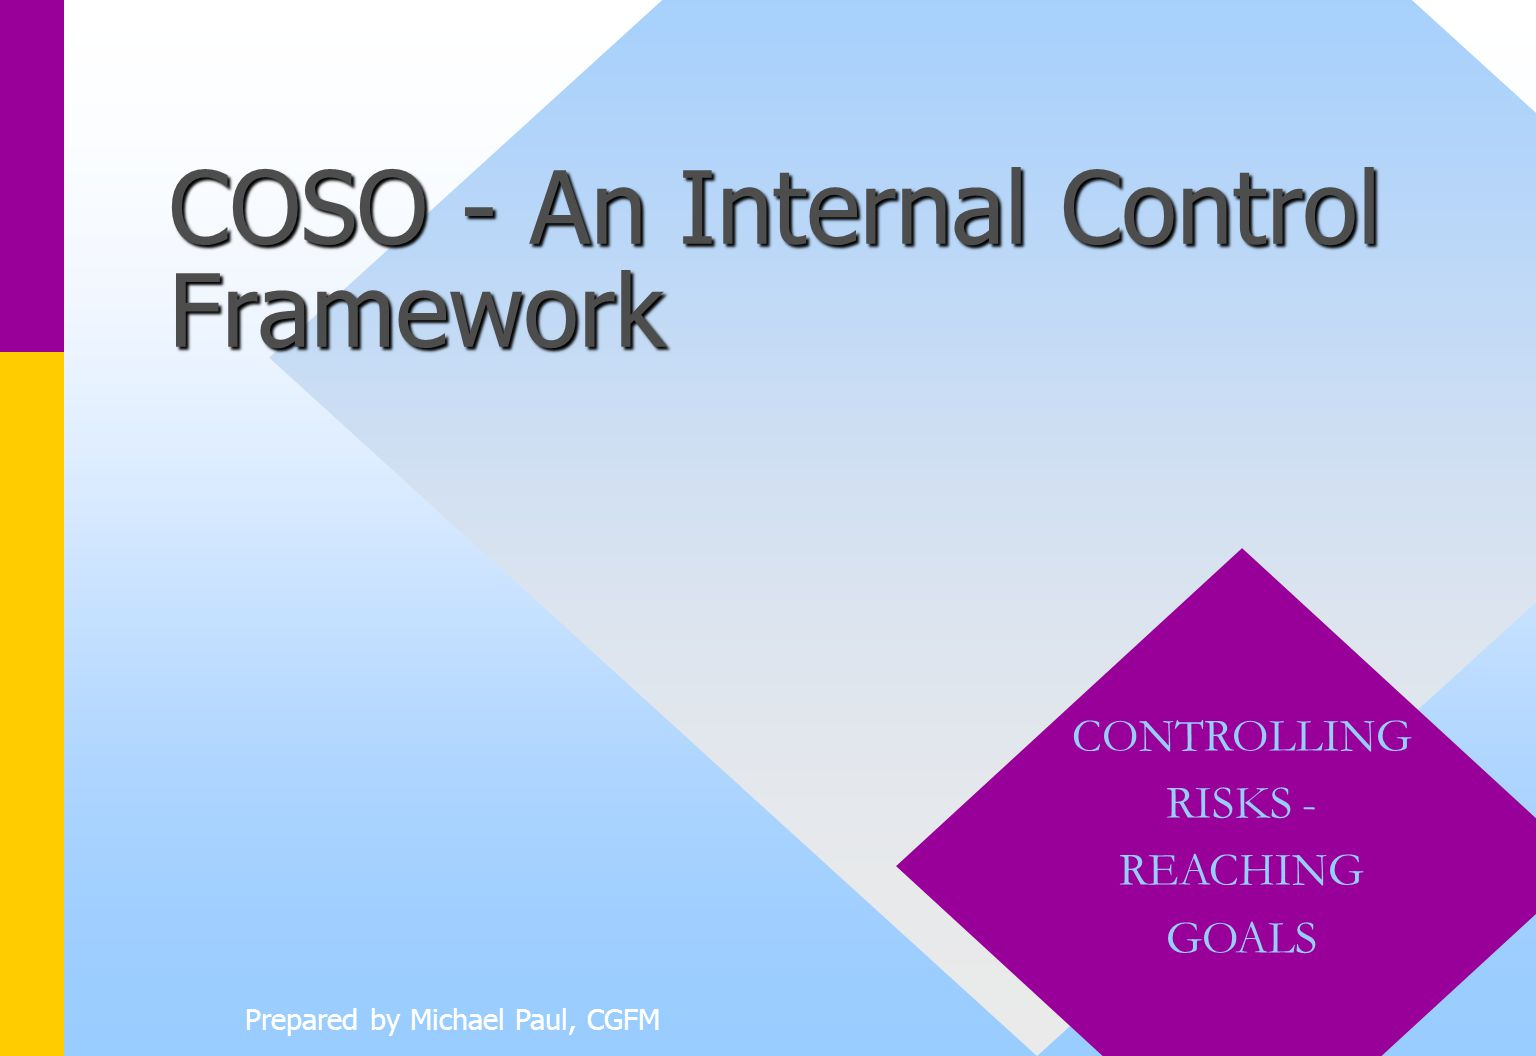 coso presentation Buying time on coso's internal control framework too many  spreadsheets,  and presentations that link your critical business data in one place information.